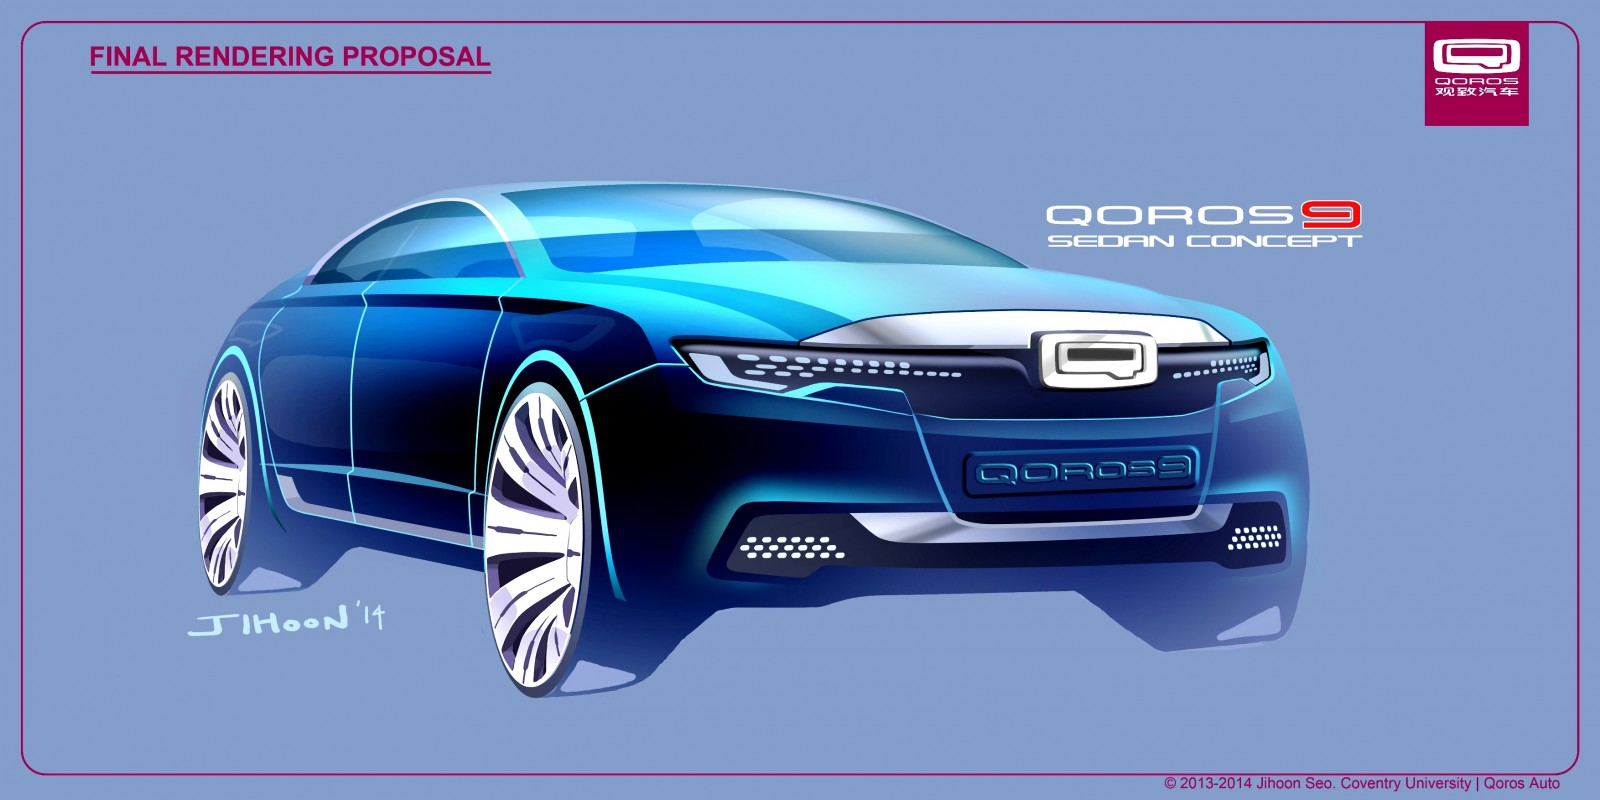 QOROS Is Little Brand With Big Ideas - Qoros9 and Flagship Concept Designs Maturing 7